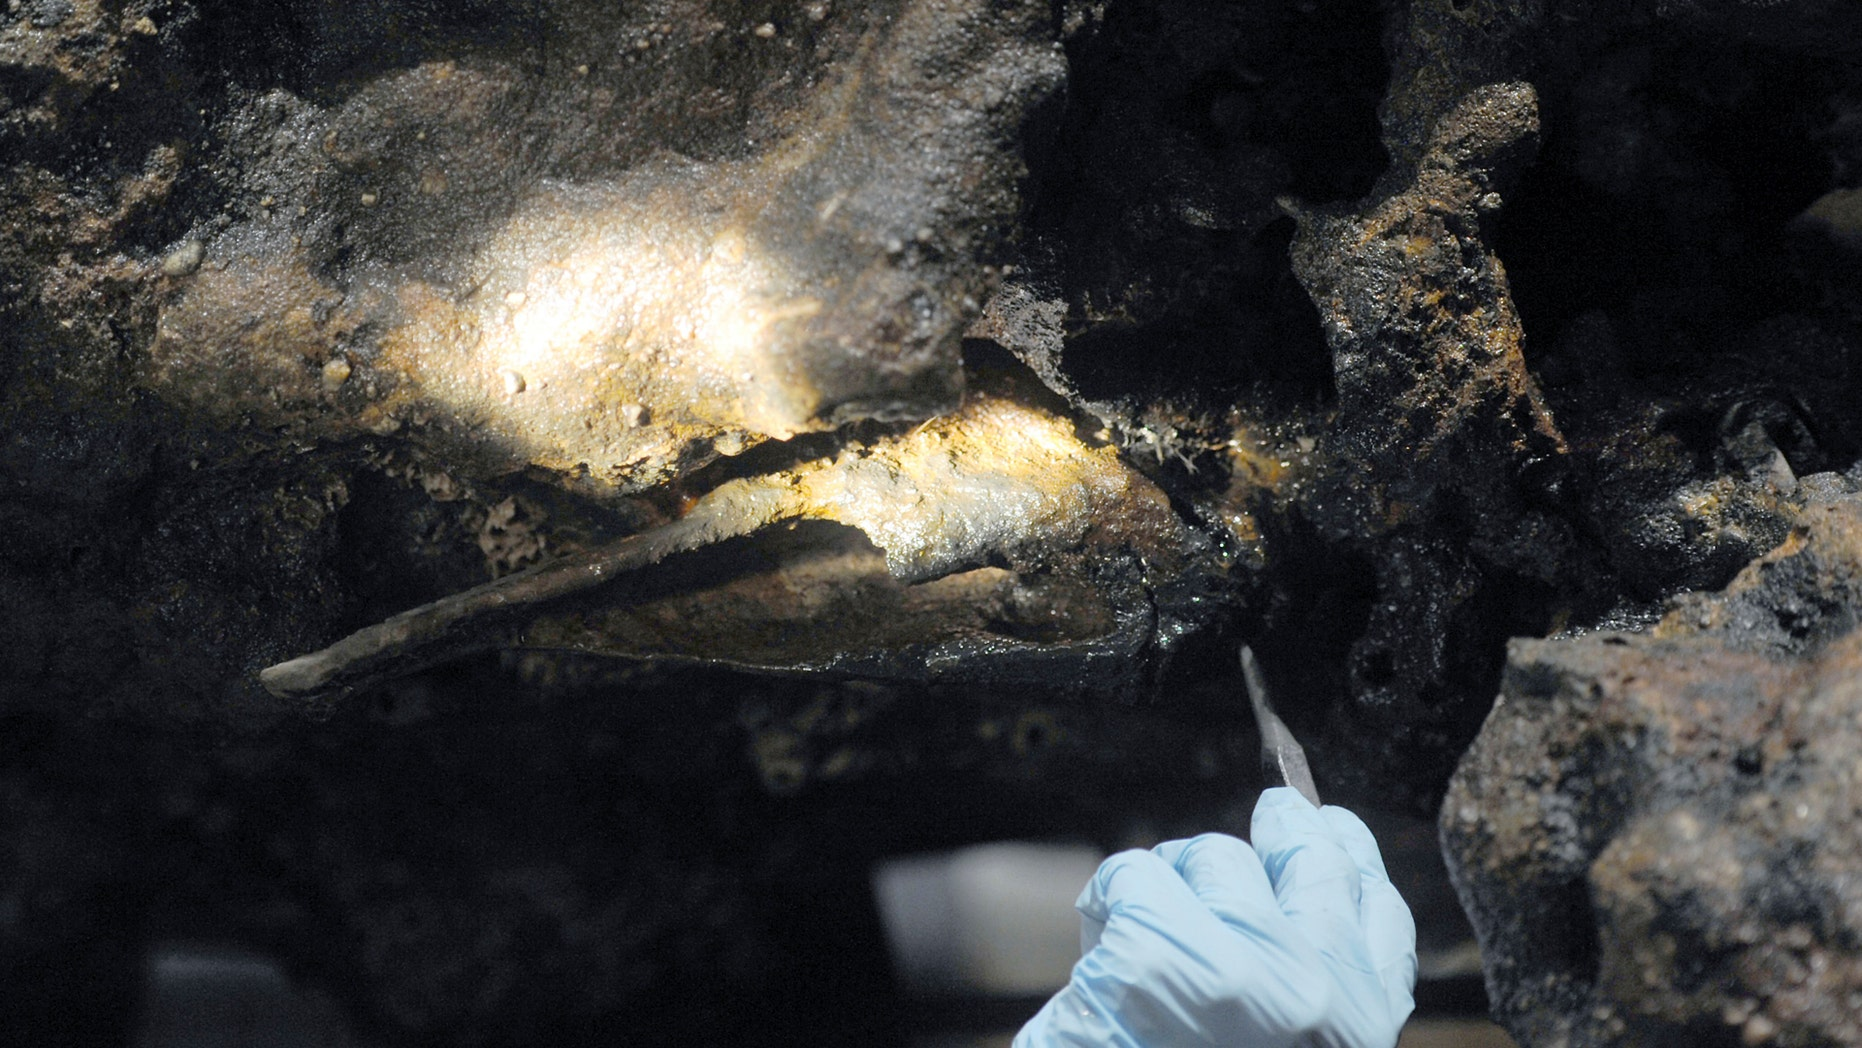 """In this Aug. 14, 2017 photo, Marie Kesten Zahn, an archaeologist and education coordinator at the Whydah Pirate Museum in West Yarmouth, Mass., probes the concretion surrounding a leg bone that was salvaged from the Whydah shipwreck off the coast of Wellfleet on Cape Cod. Researchers are working to determine if the remains belong to Samuel """"Black Sam"""" Bellamy, the captain of the ship. (Merrily Cassidy/Cape Cod Times via AP)"""